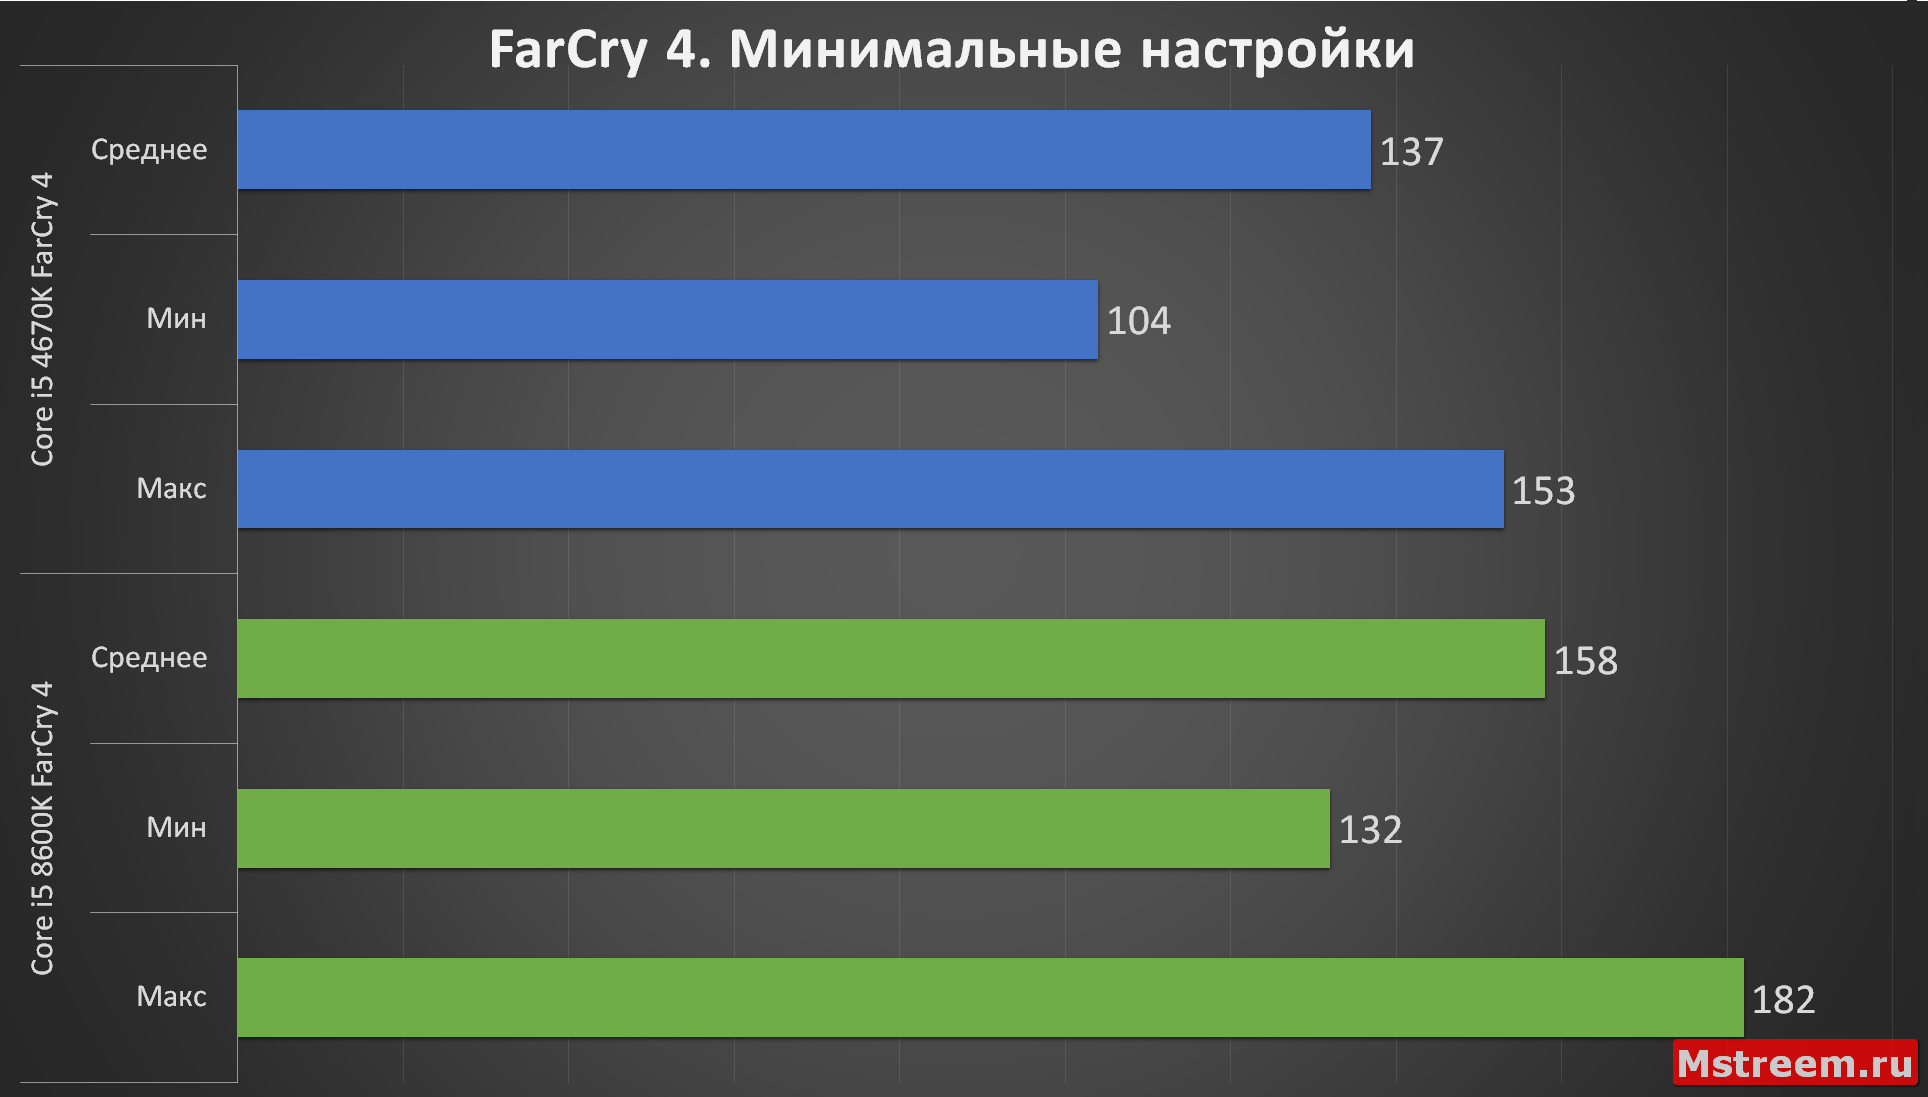 FarCry 4 (Низкие настройки) (Intel Core i5 4670K VS 8600K)